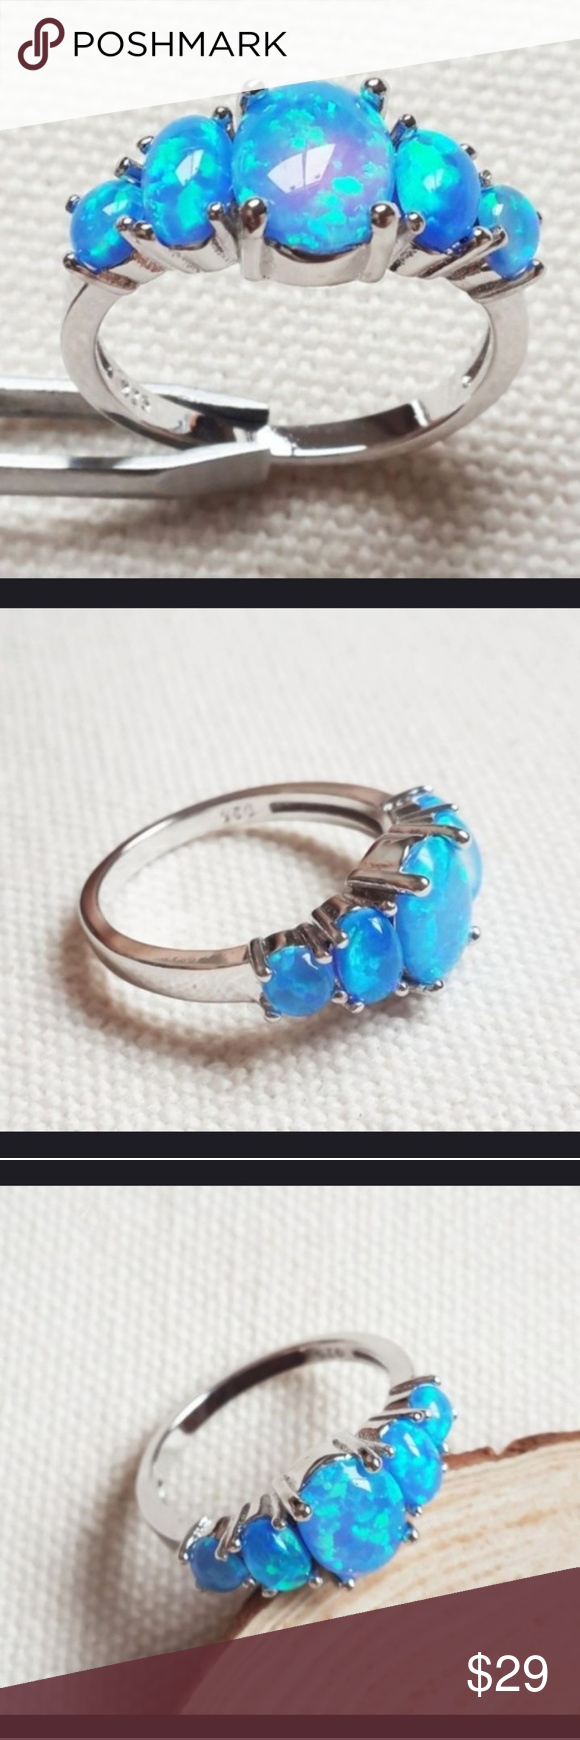 New Blue Fire Opal Sterling Silver Ring Simply Gorgeous Blue Fire Opal 925 Sterling Silver Stamped Great Sterling Silver Rings Fashion Rings Fire Opal